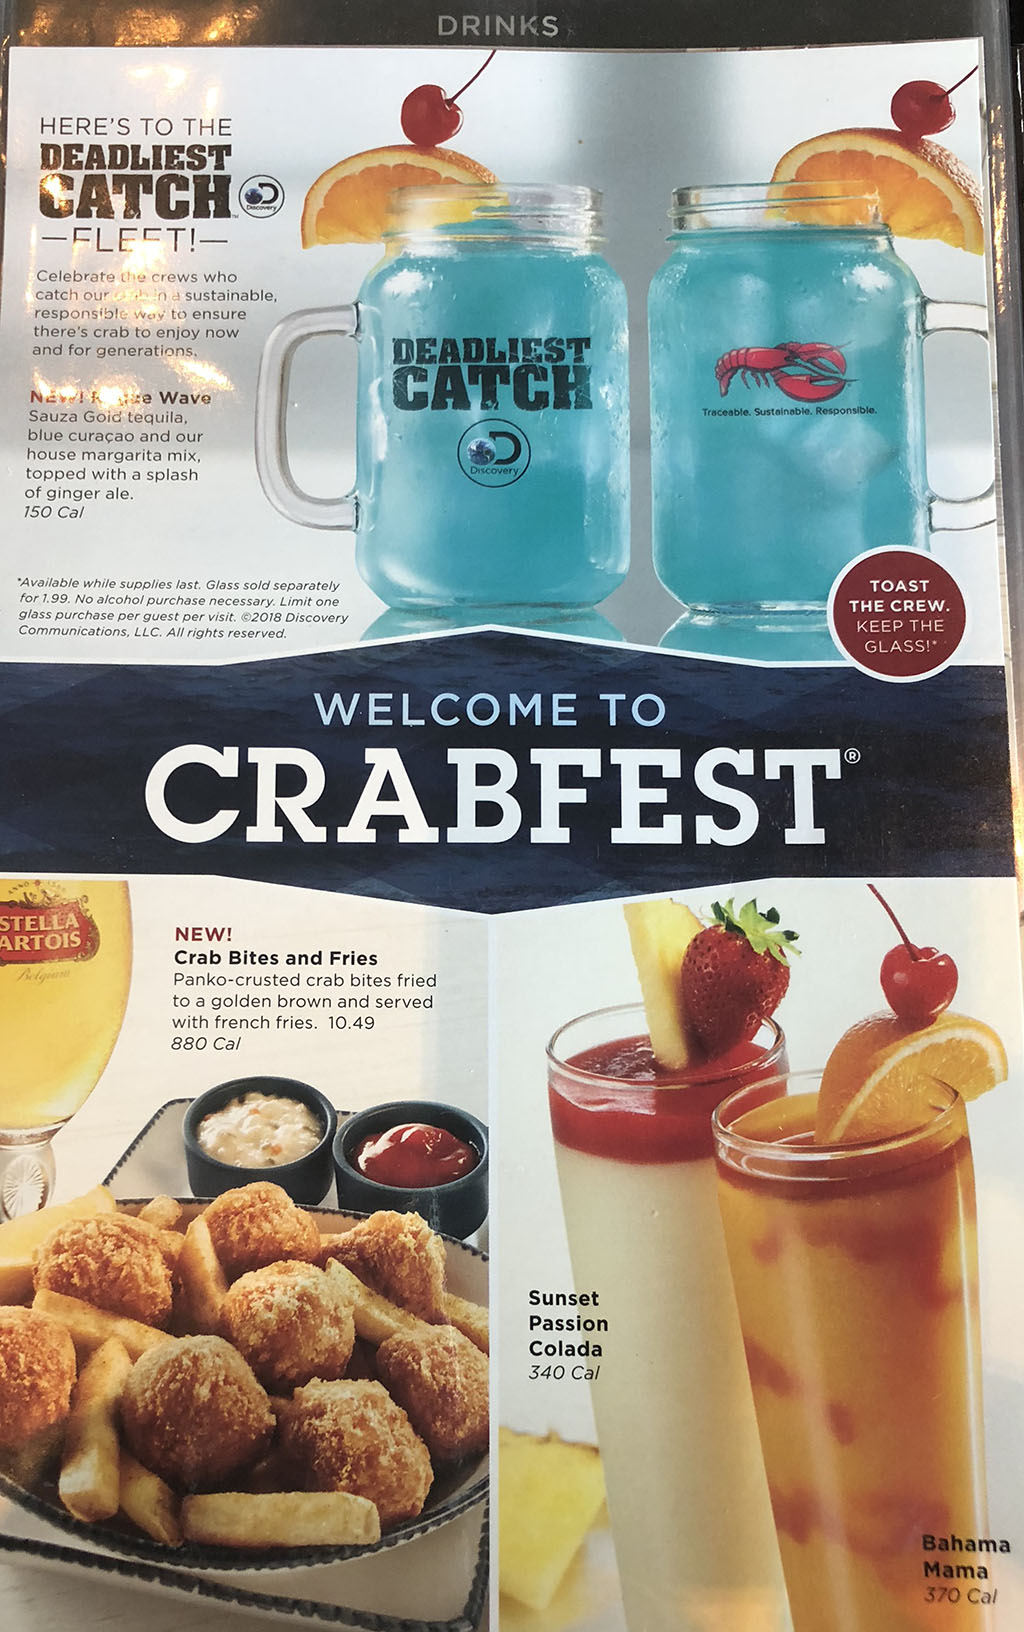 red lobster menu with prices - slc menu